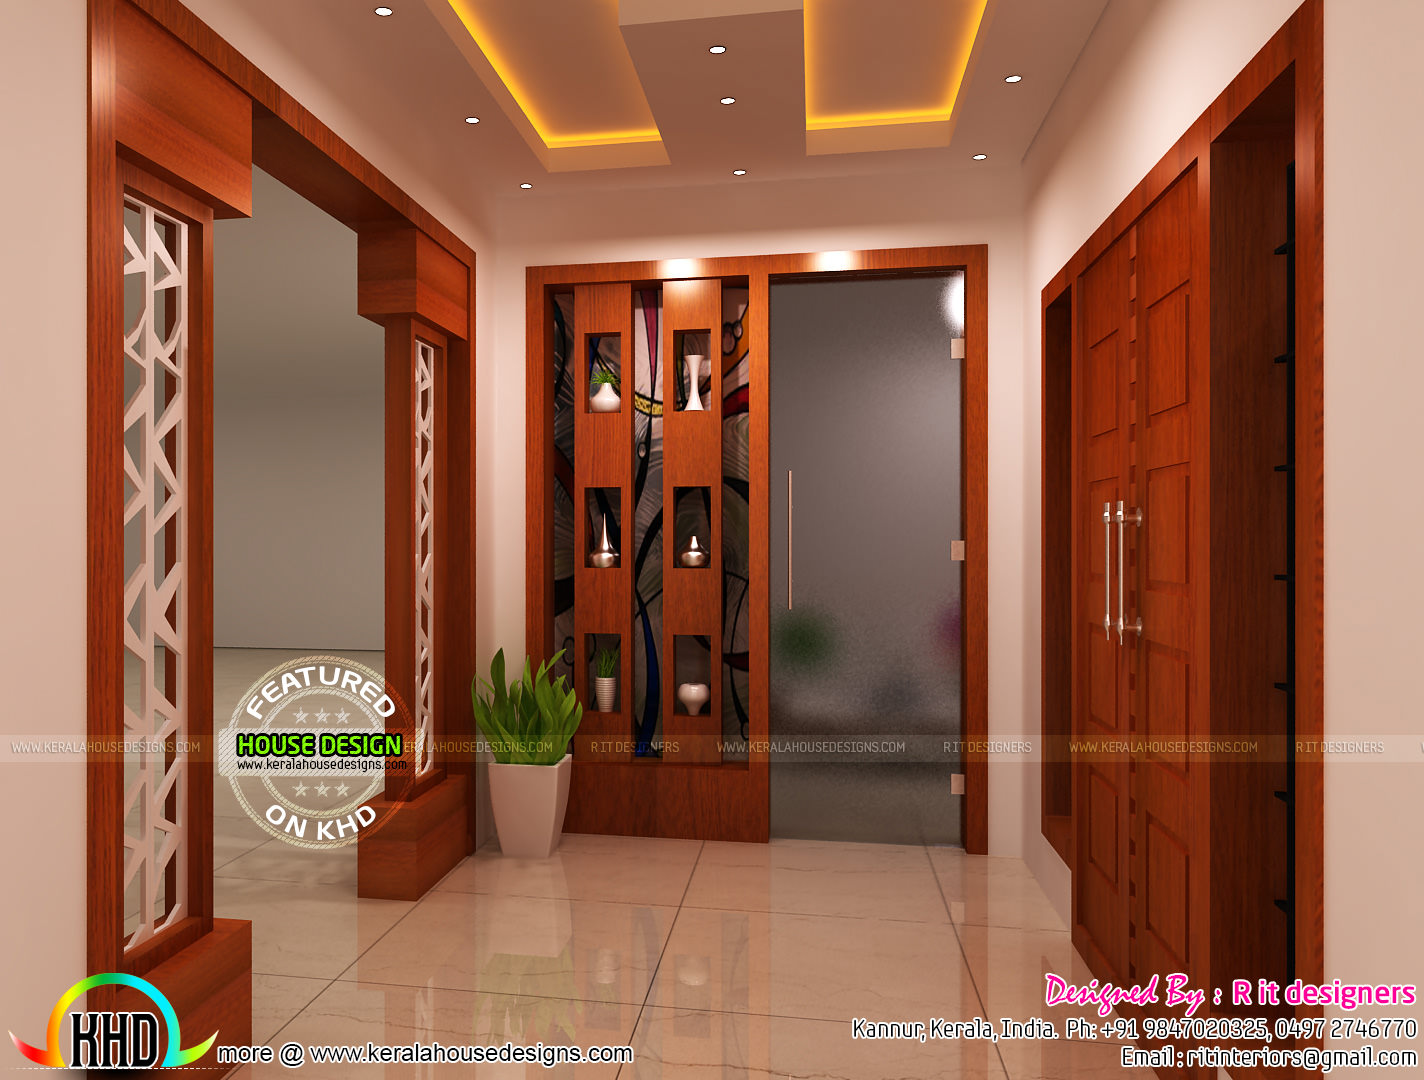 Bedroom kitchen living and foyer interiors kerala home for Foyer design ideas india